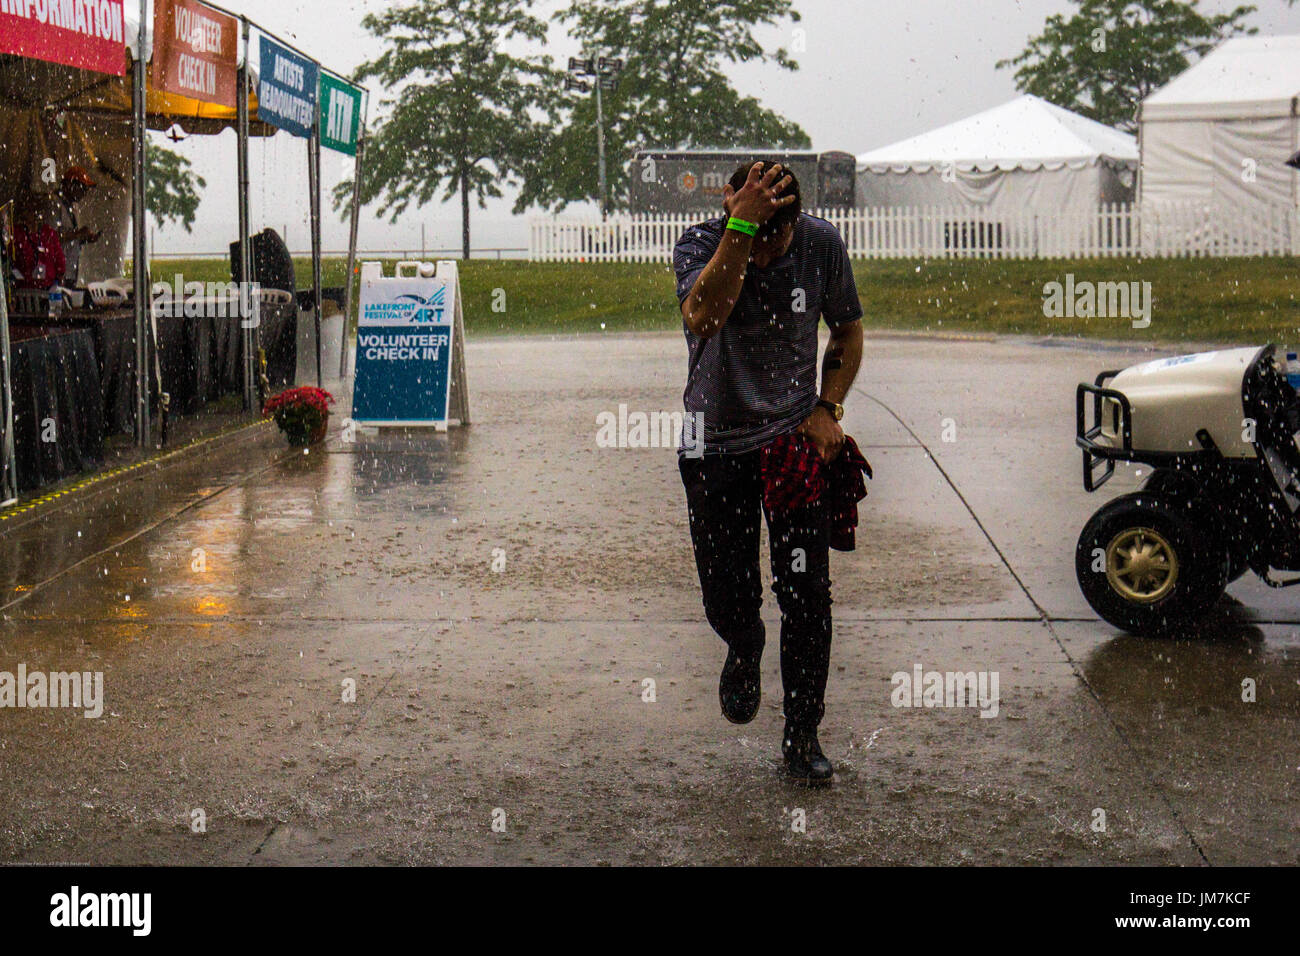 Running in from the rain with his hand on his head. - Stock Image